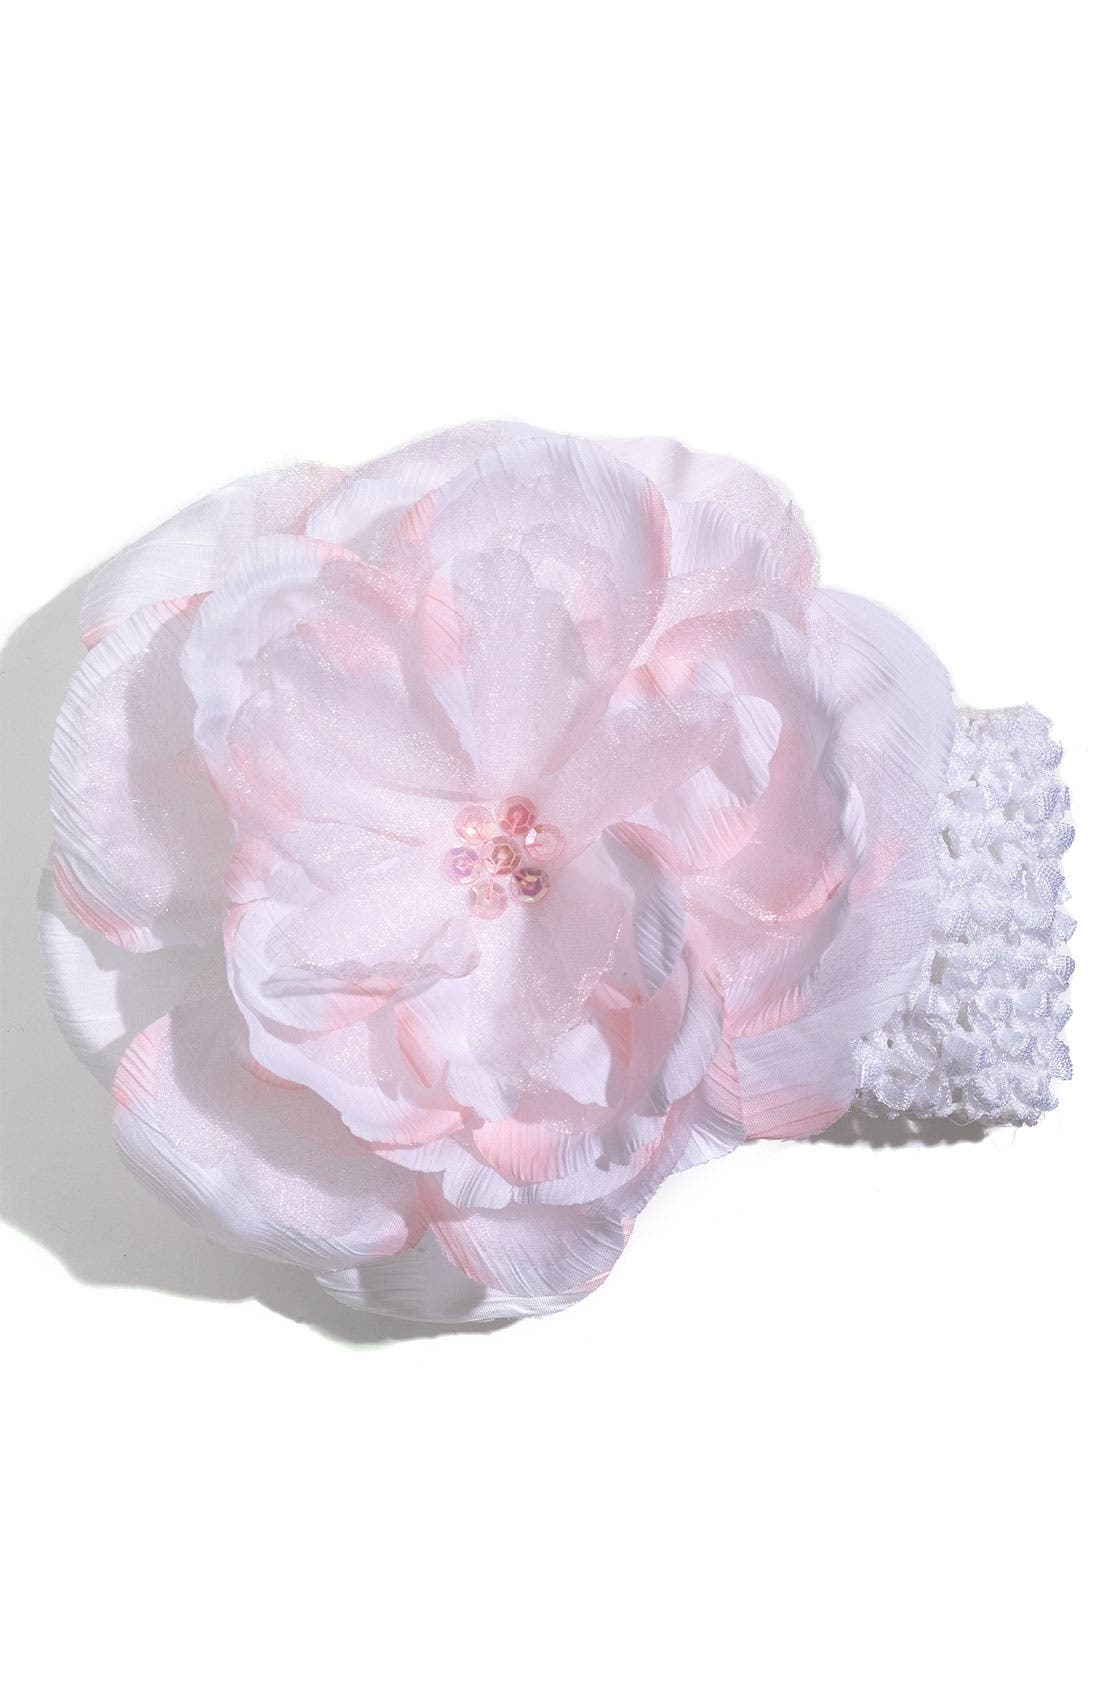 Alternate Image 1 Selected - PLH Bows & Laces Crochet Headband (Infant & Toddler)